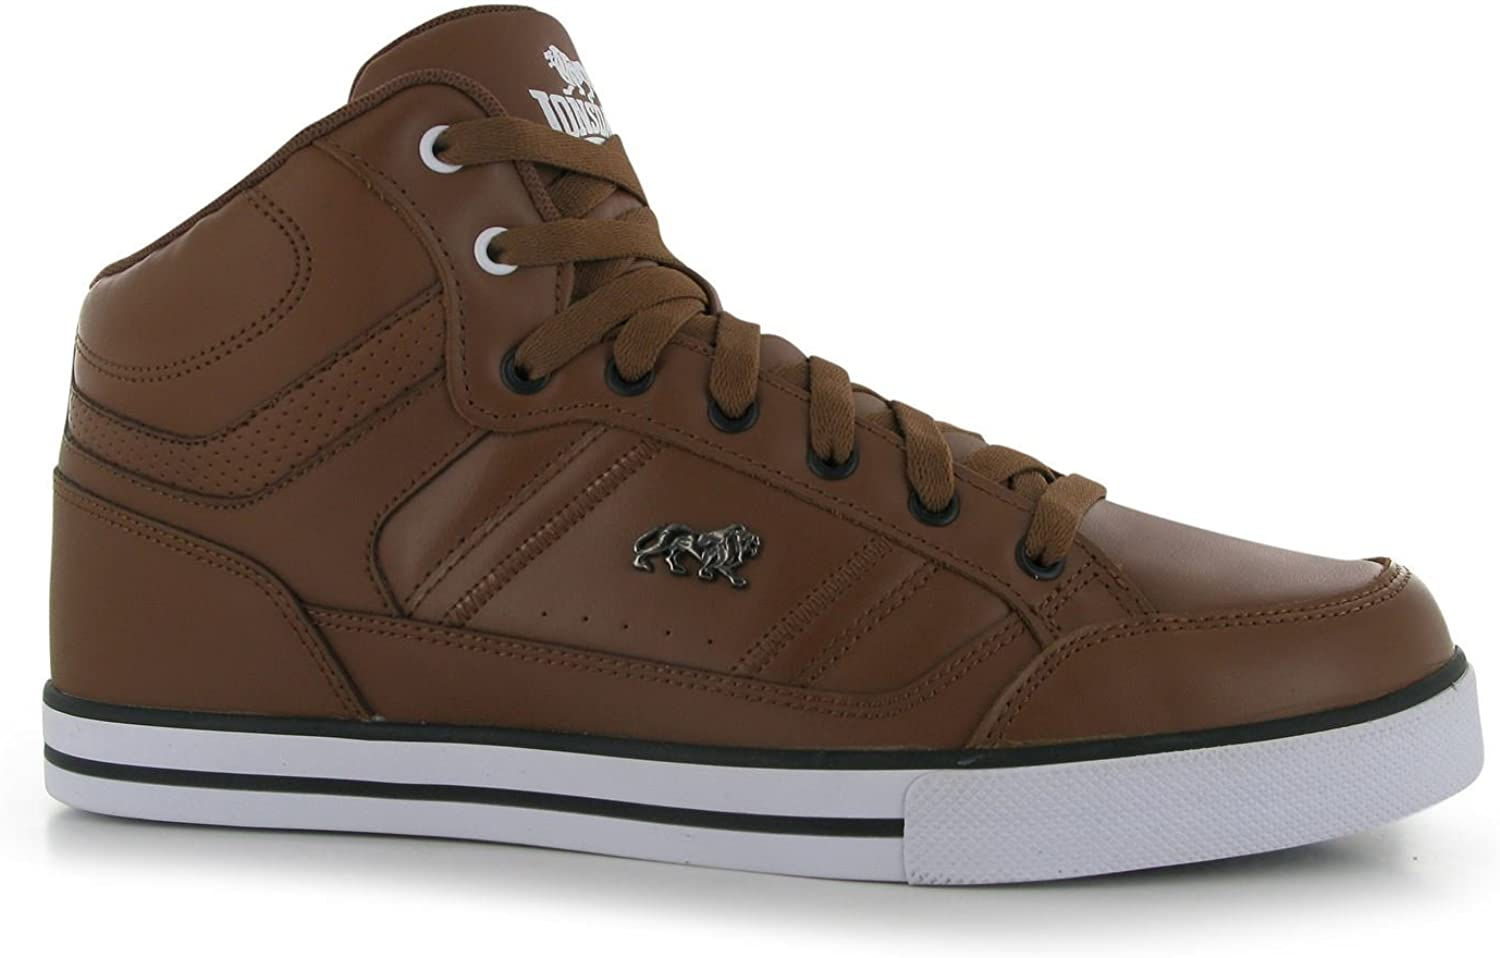 Lonsdale Canons Trainers Mens Tan White Casual Sneakers shoes Footwear